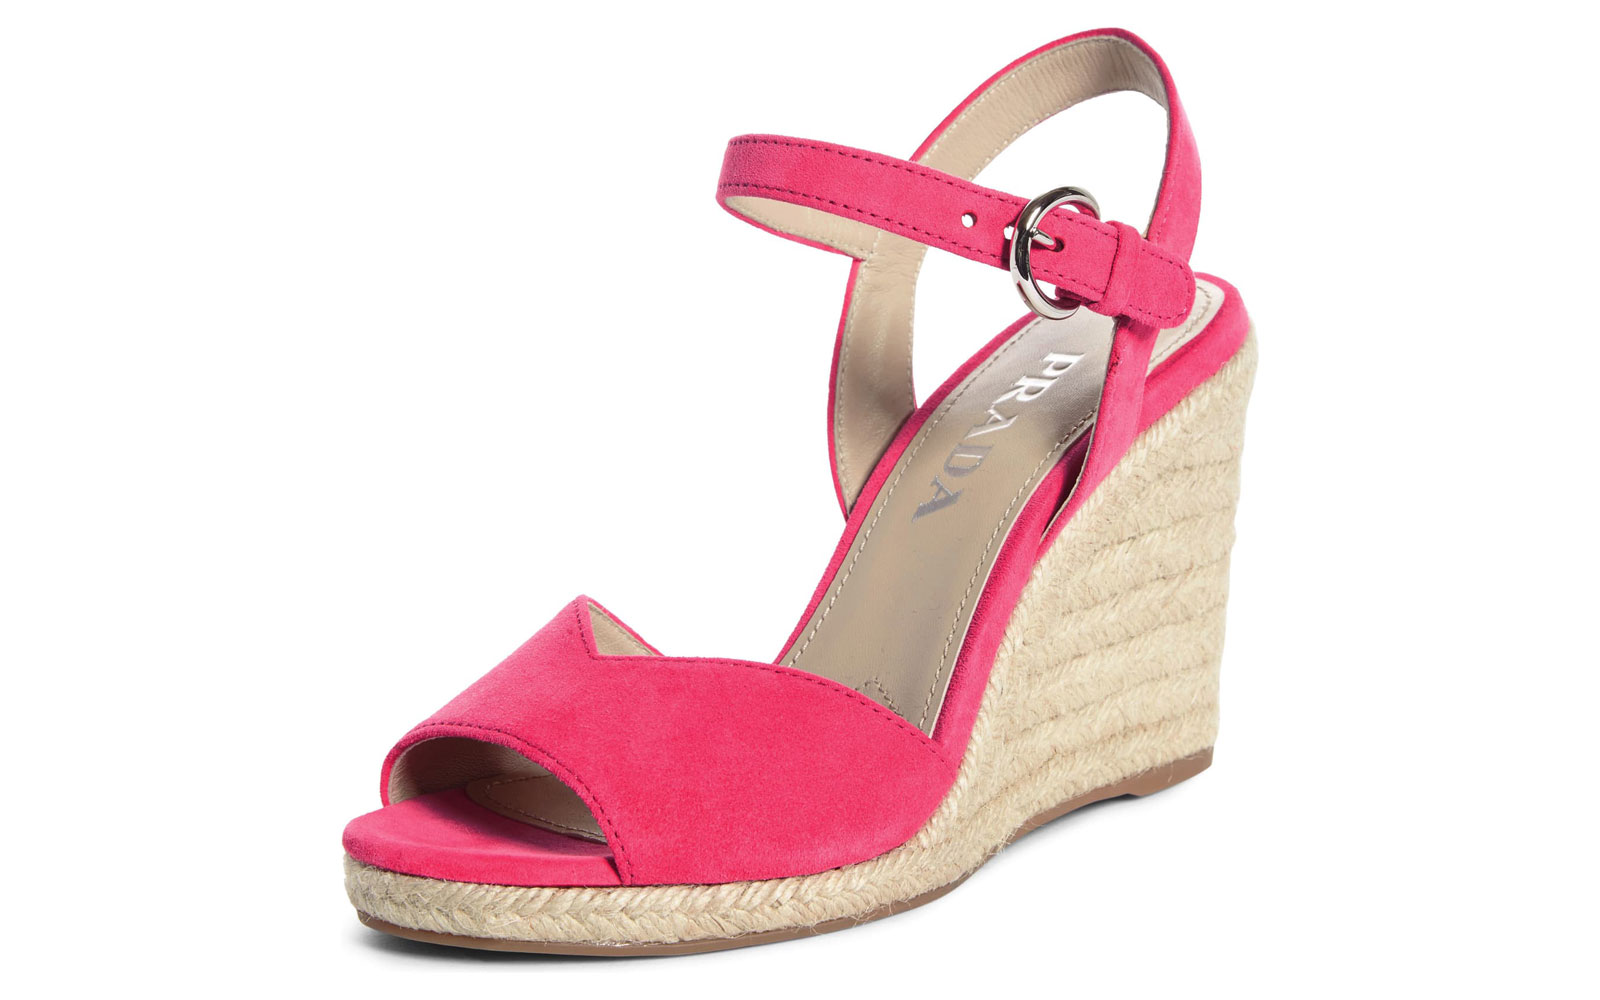 Pink suede wedge sandals